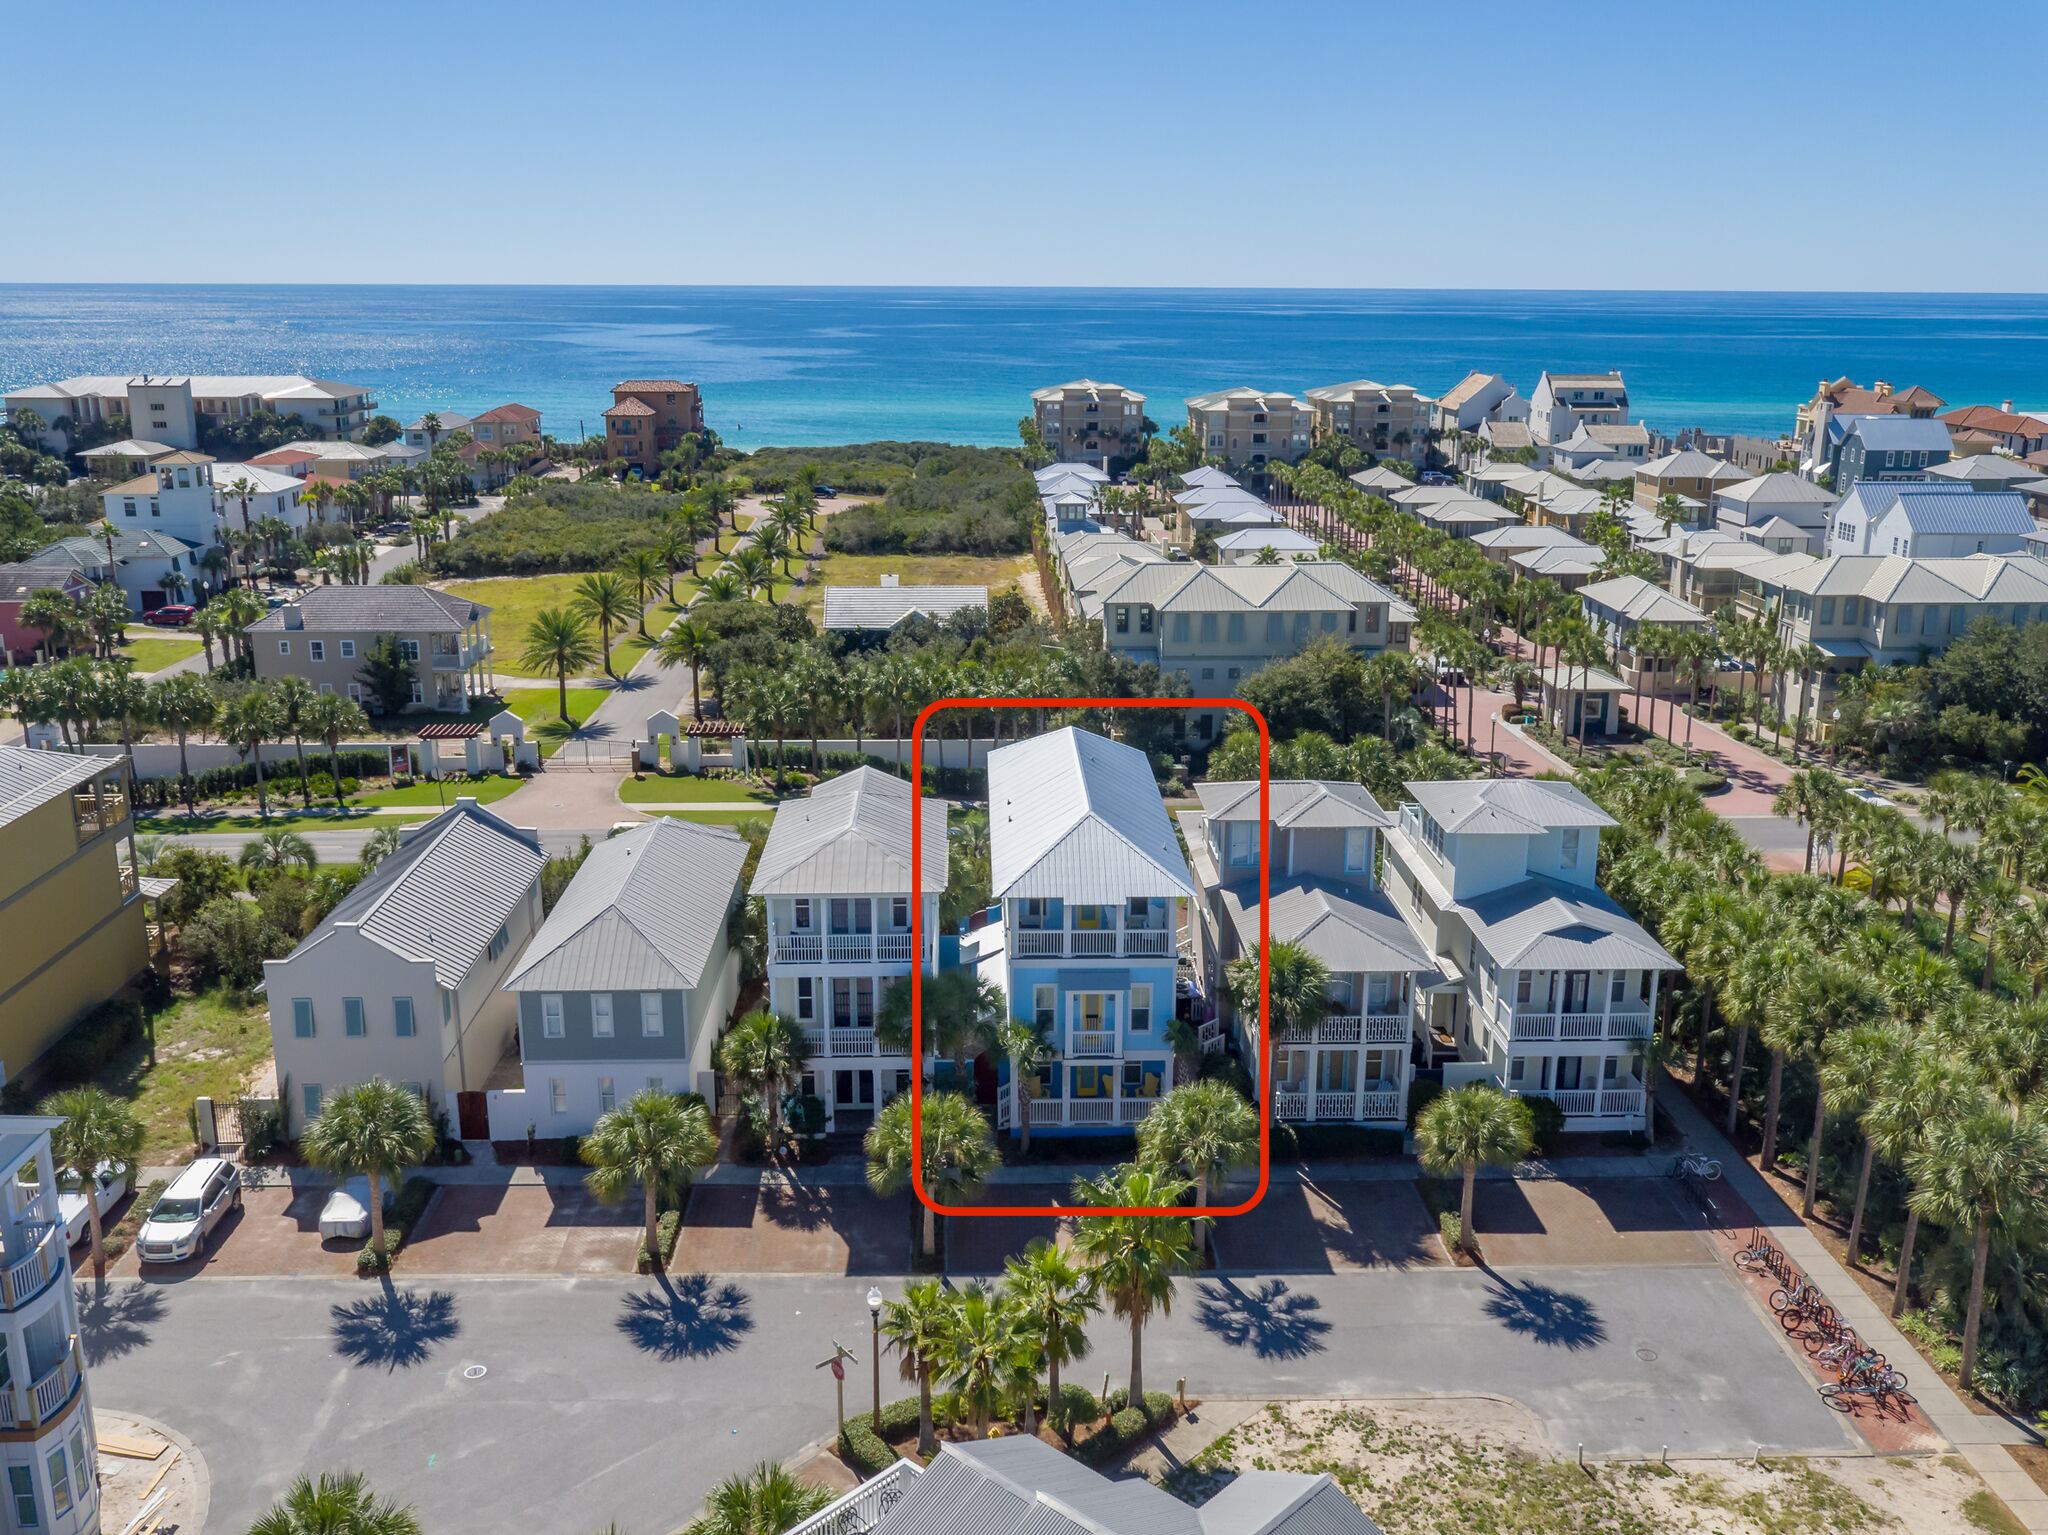 The tallest house on East Trigger Trail, DREAMS COME BLUE with the proximity this house is to the Emerald Waters of the Gulf!